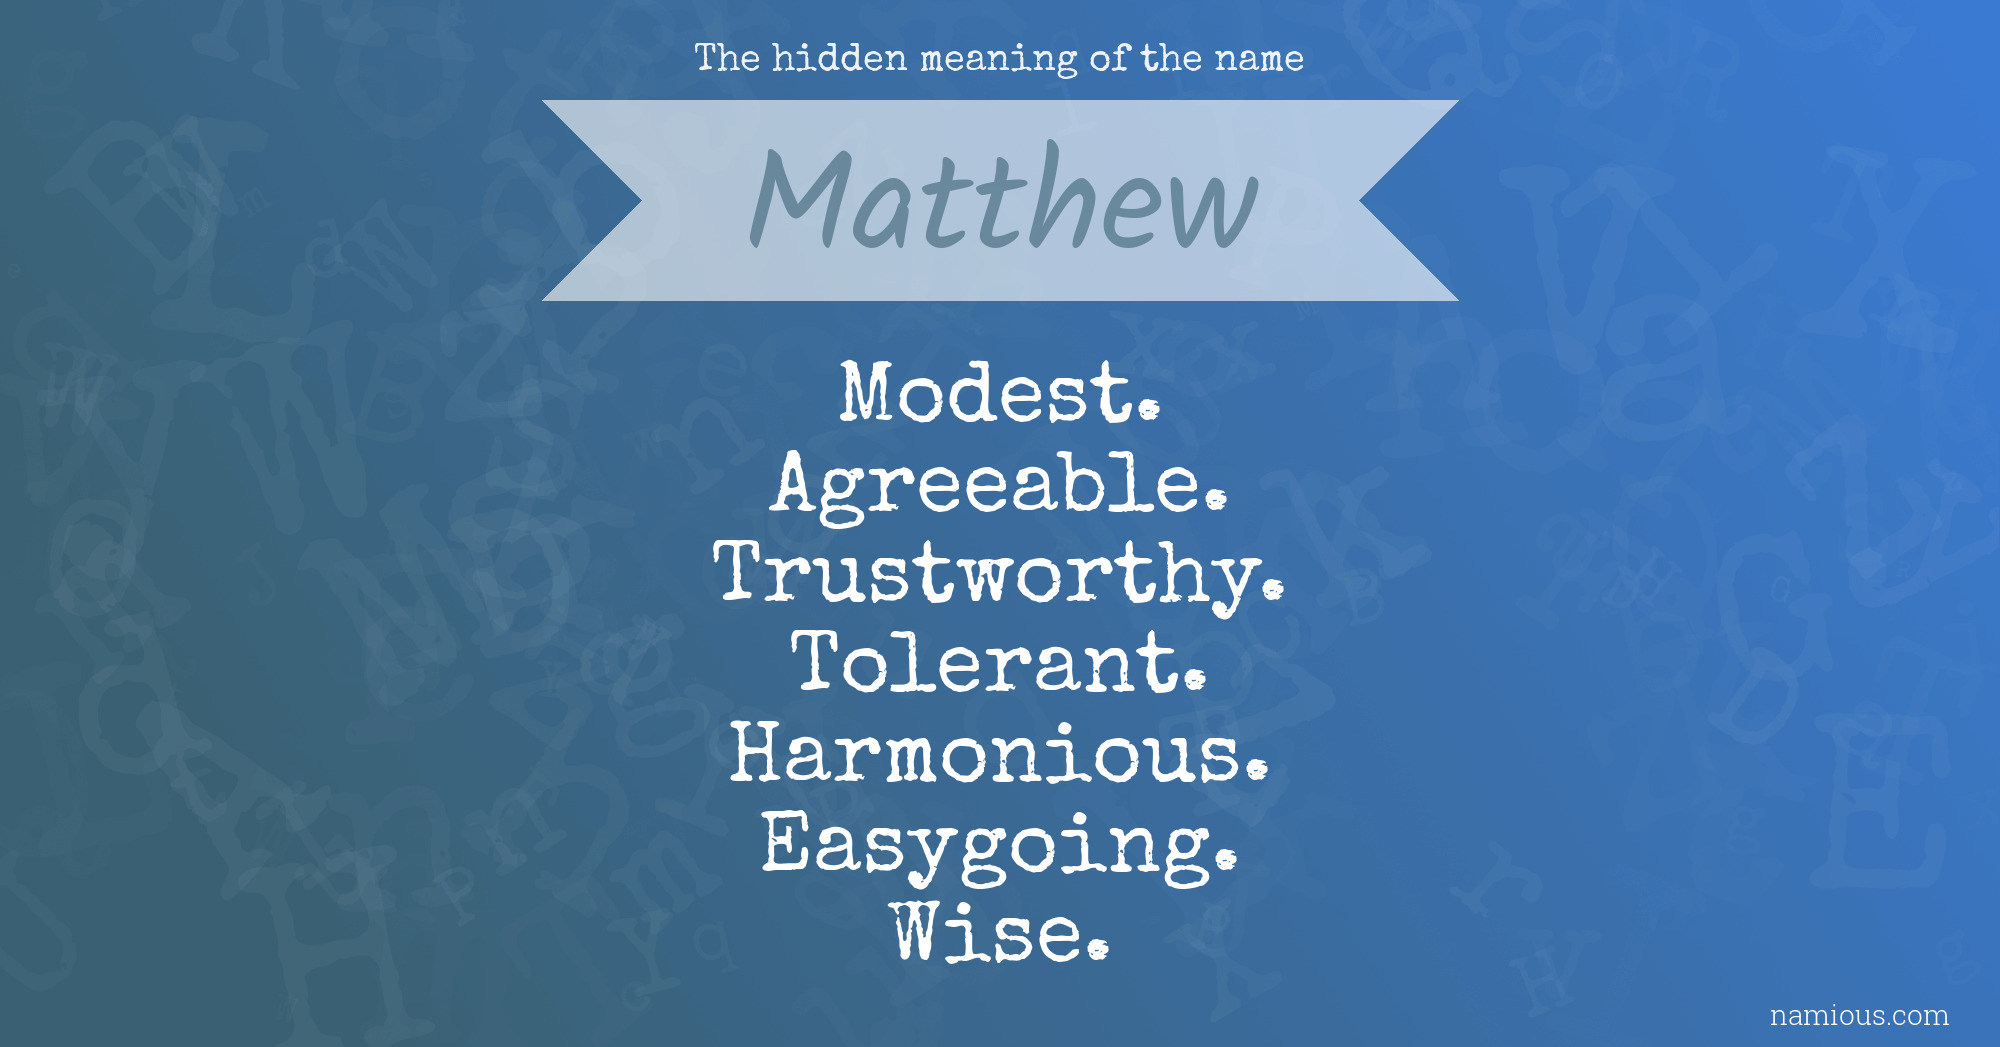 The hidden meaning of the name Matthew